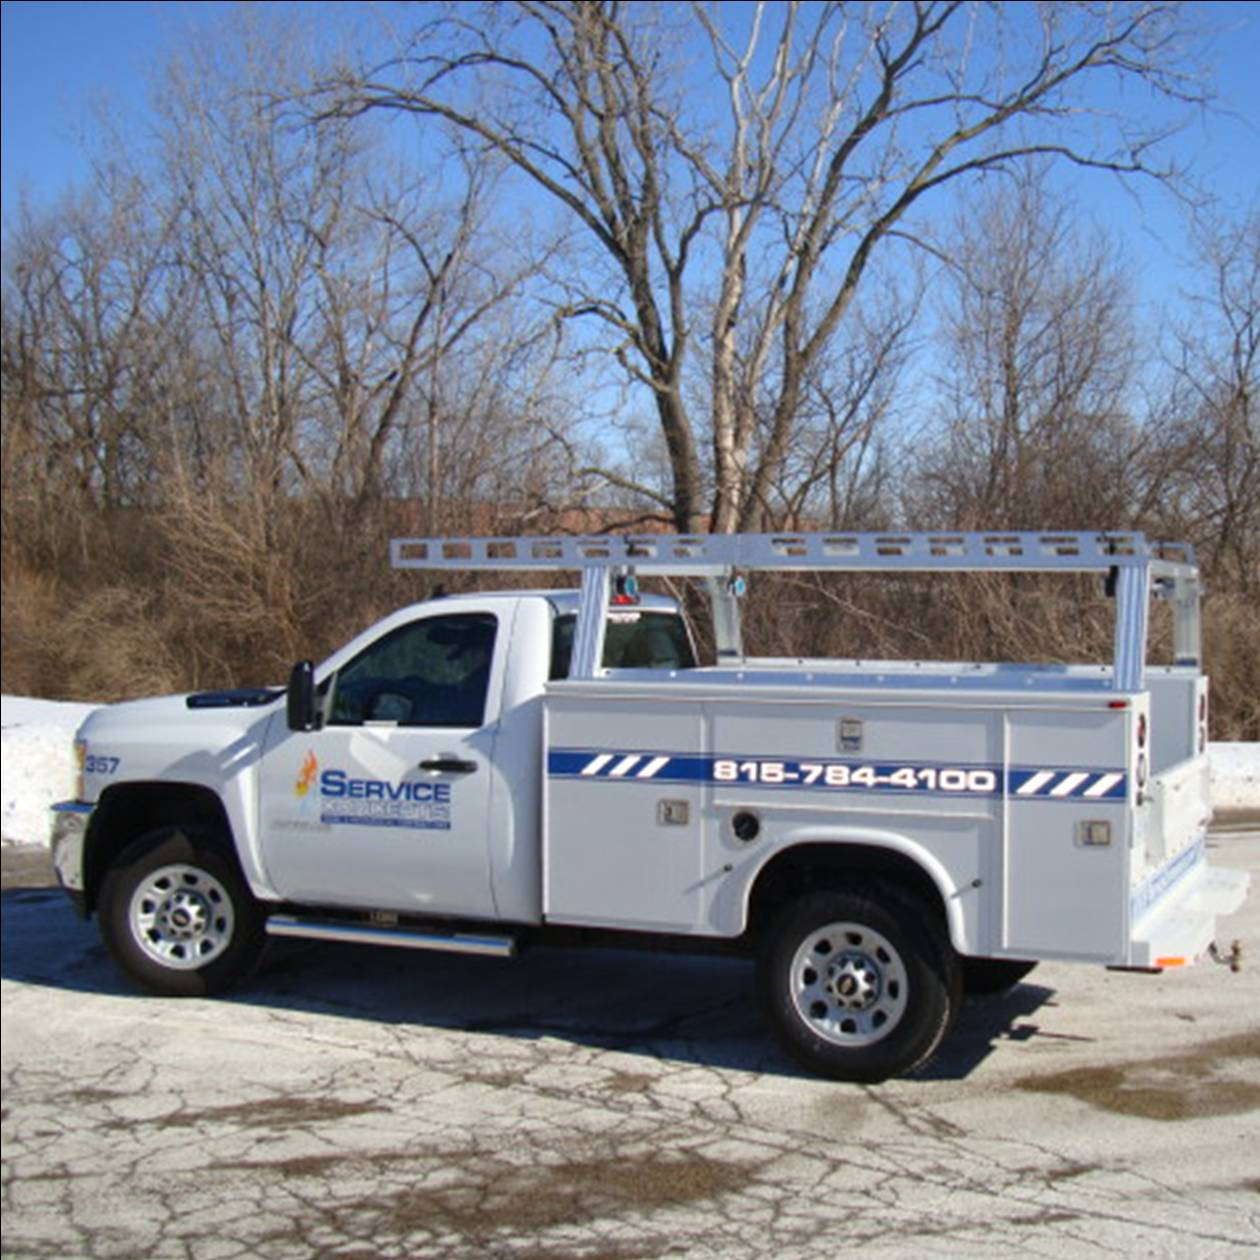 heavy duty contractor rig for utility